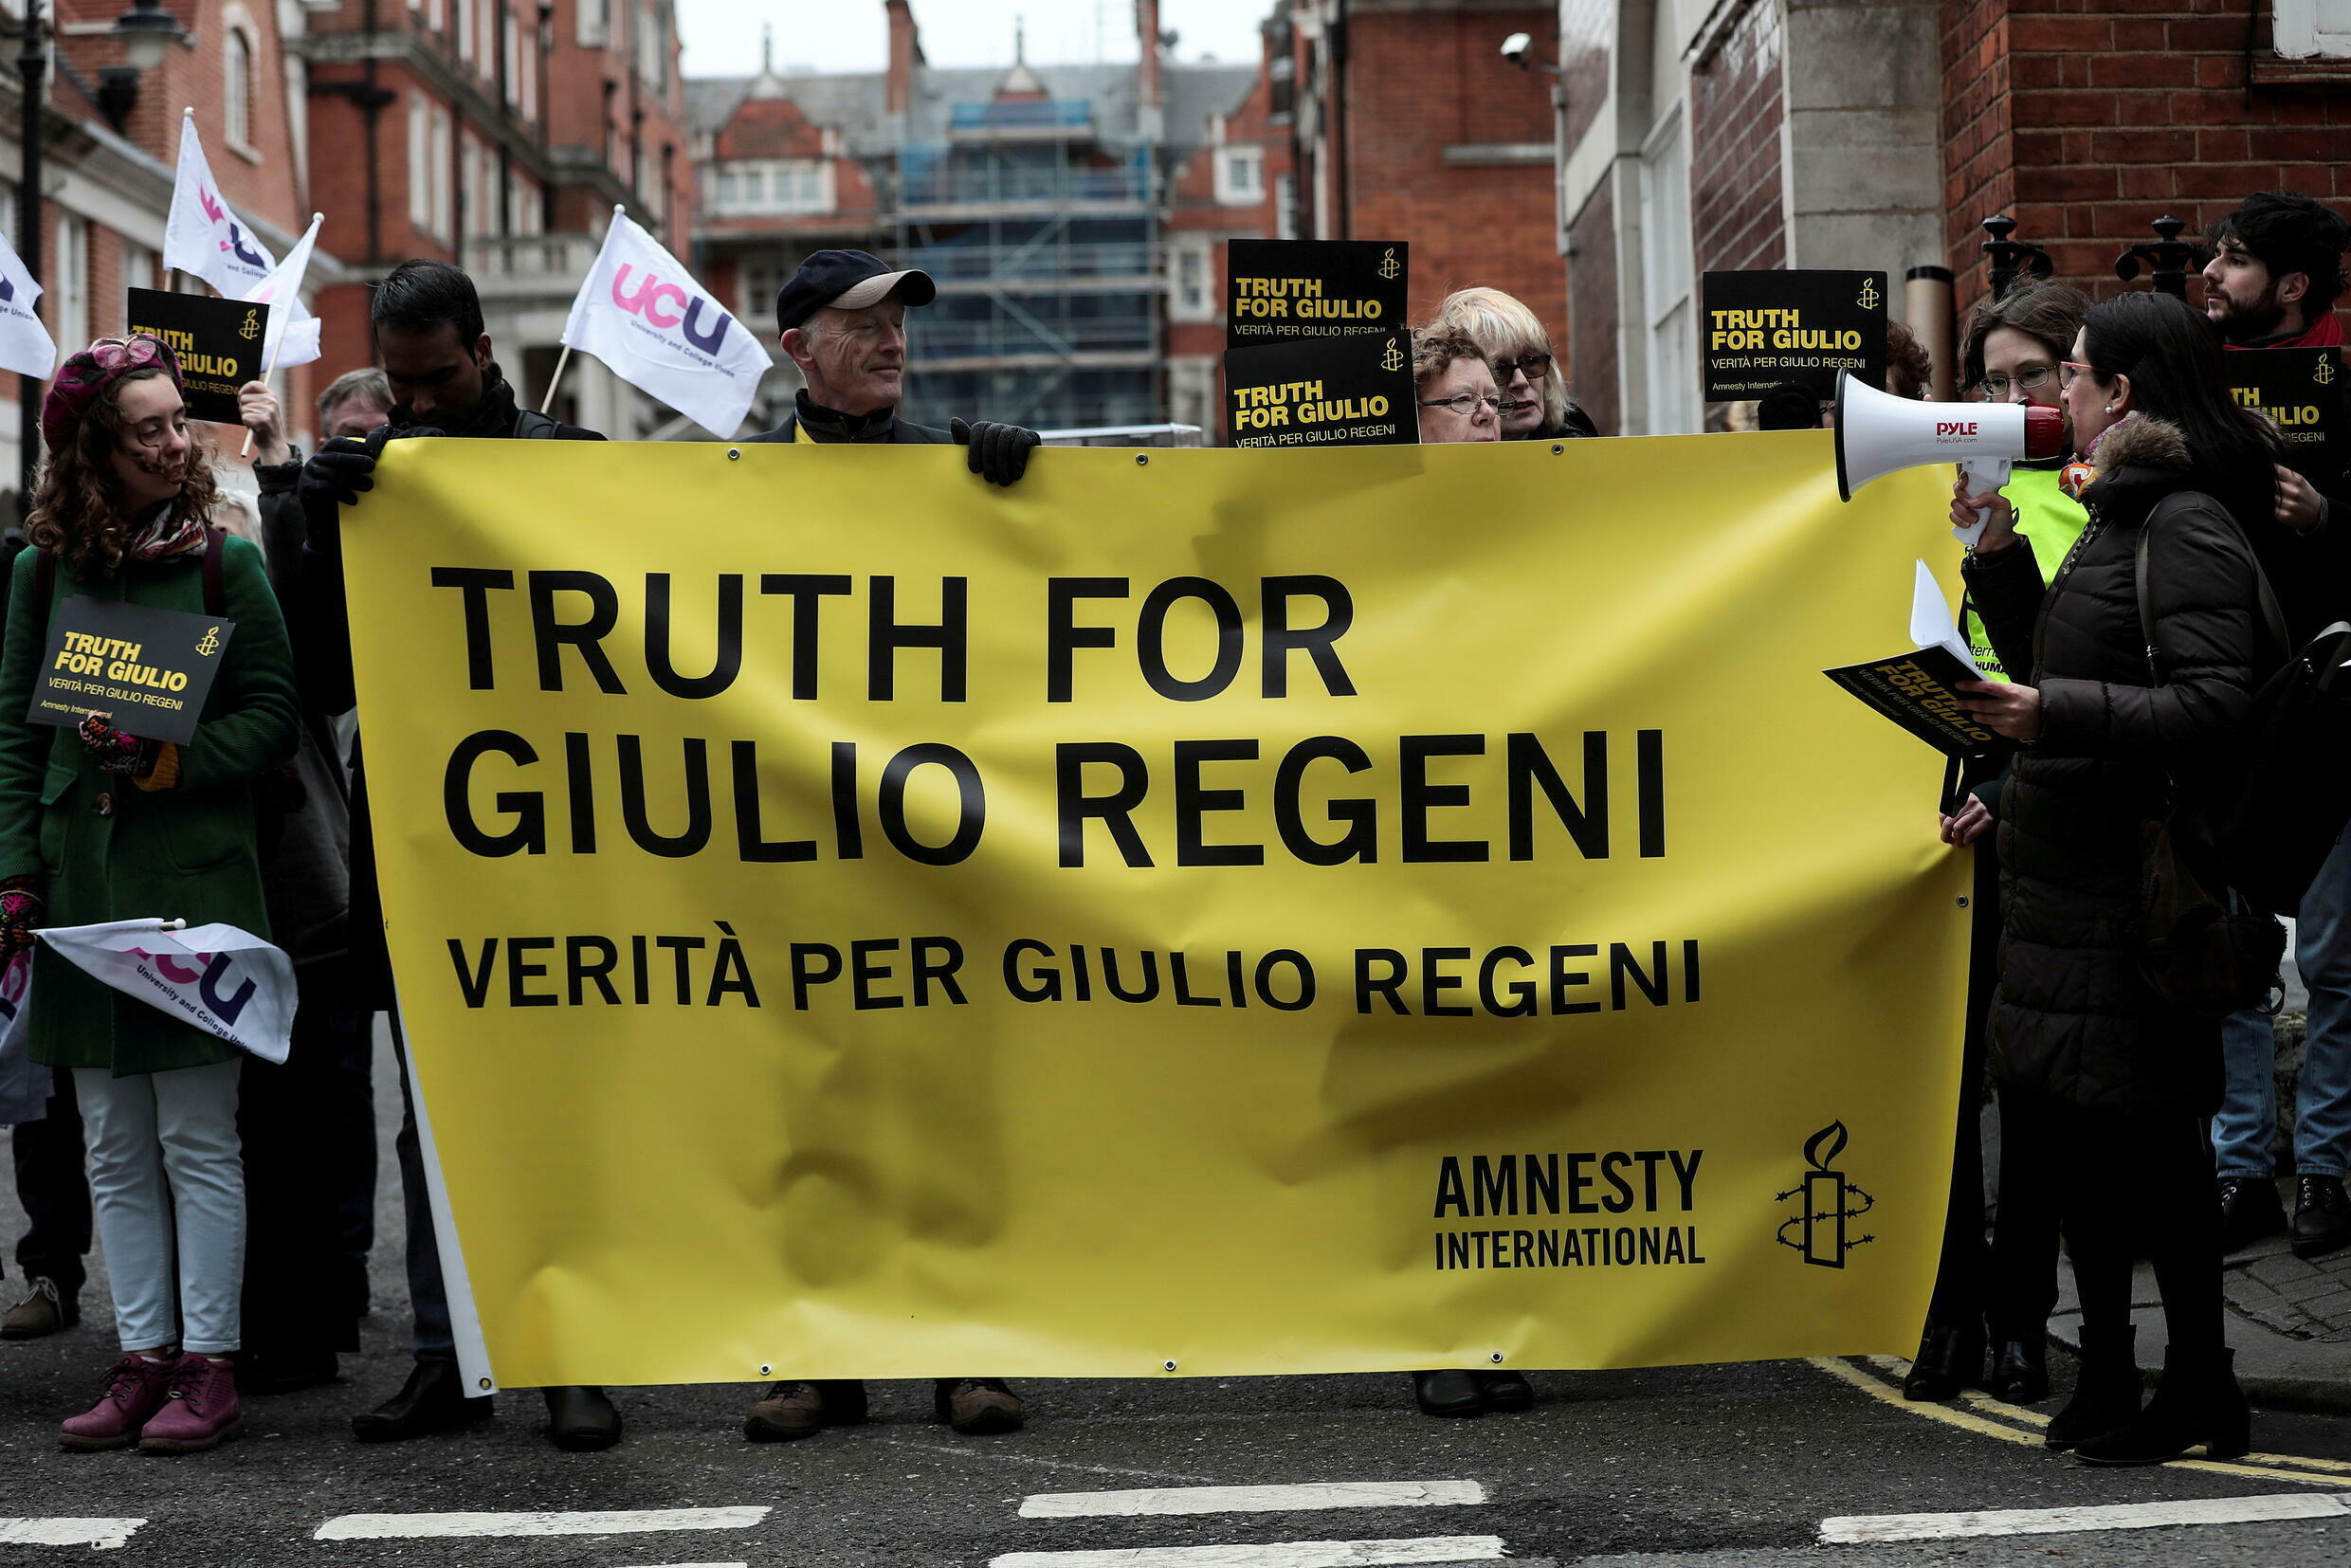 Demonstrators from Amnesty International hold placards outside the Egyptian embassy in London in support of Giulio Regeni, who was found murdered in Cairo in January 2016.